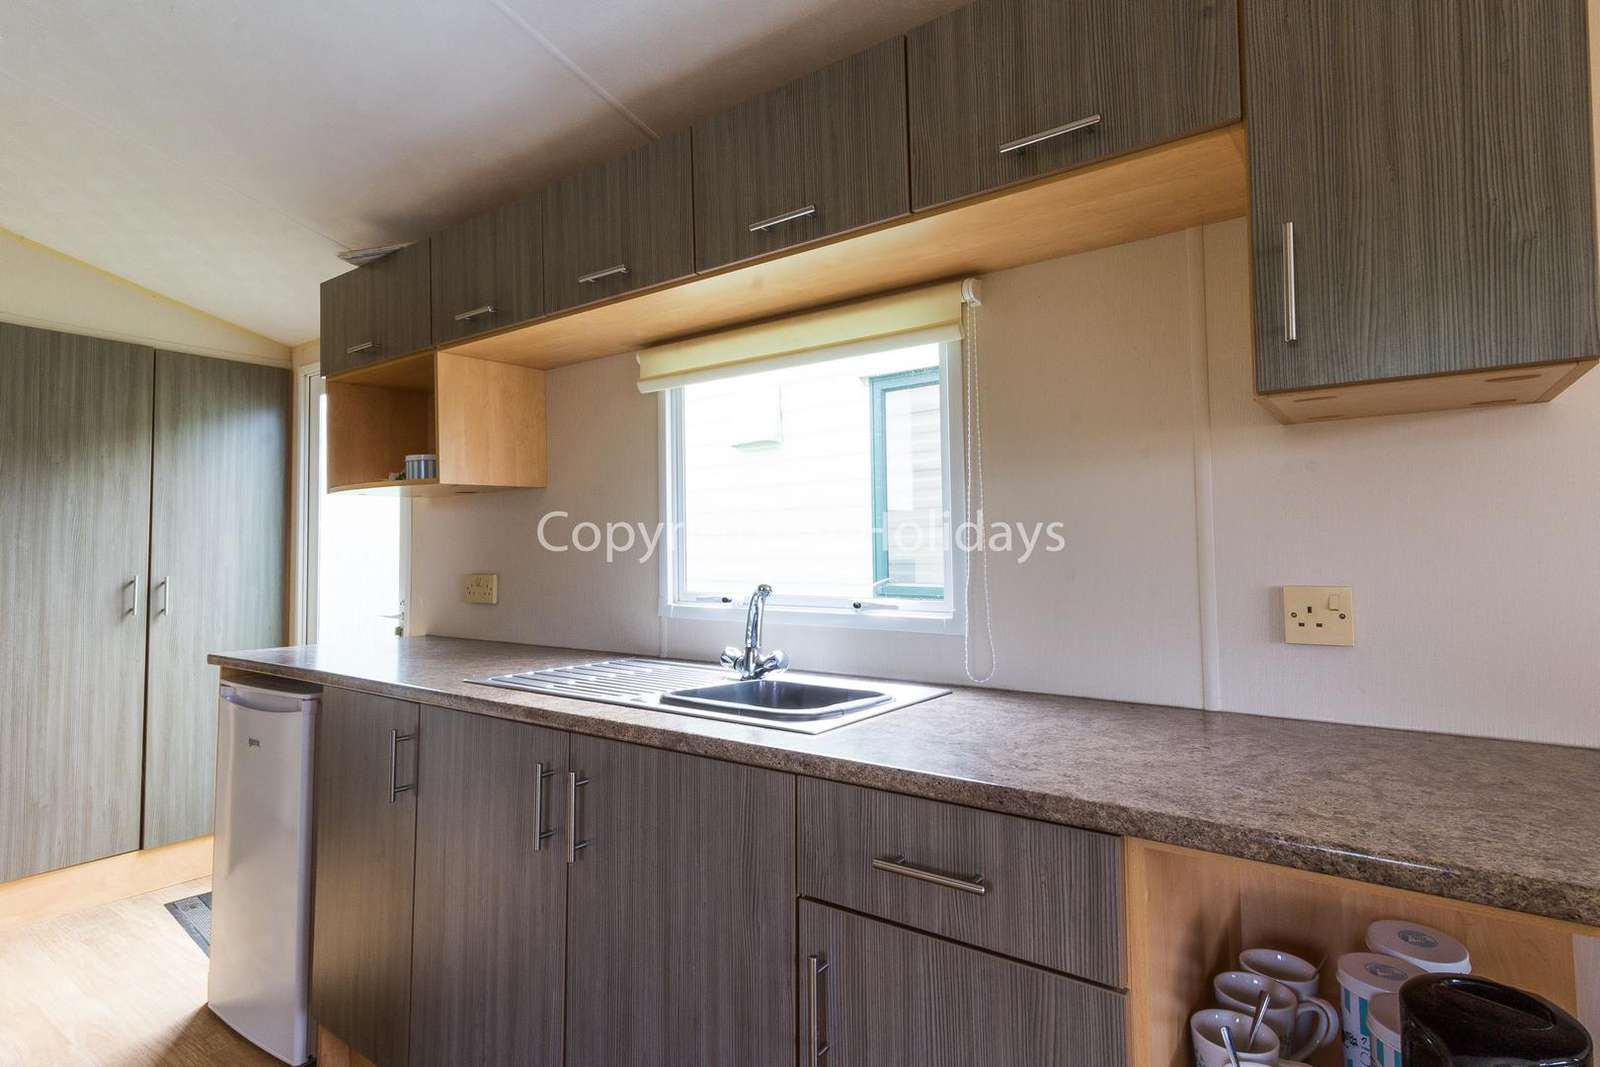 Modern kitchen, fully equipped, perfect for self-catering holidays